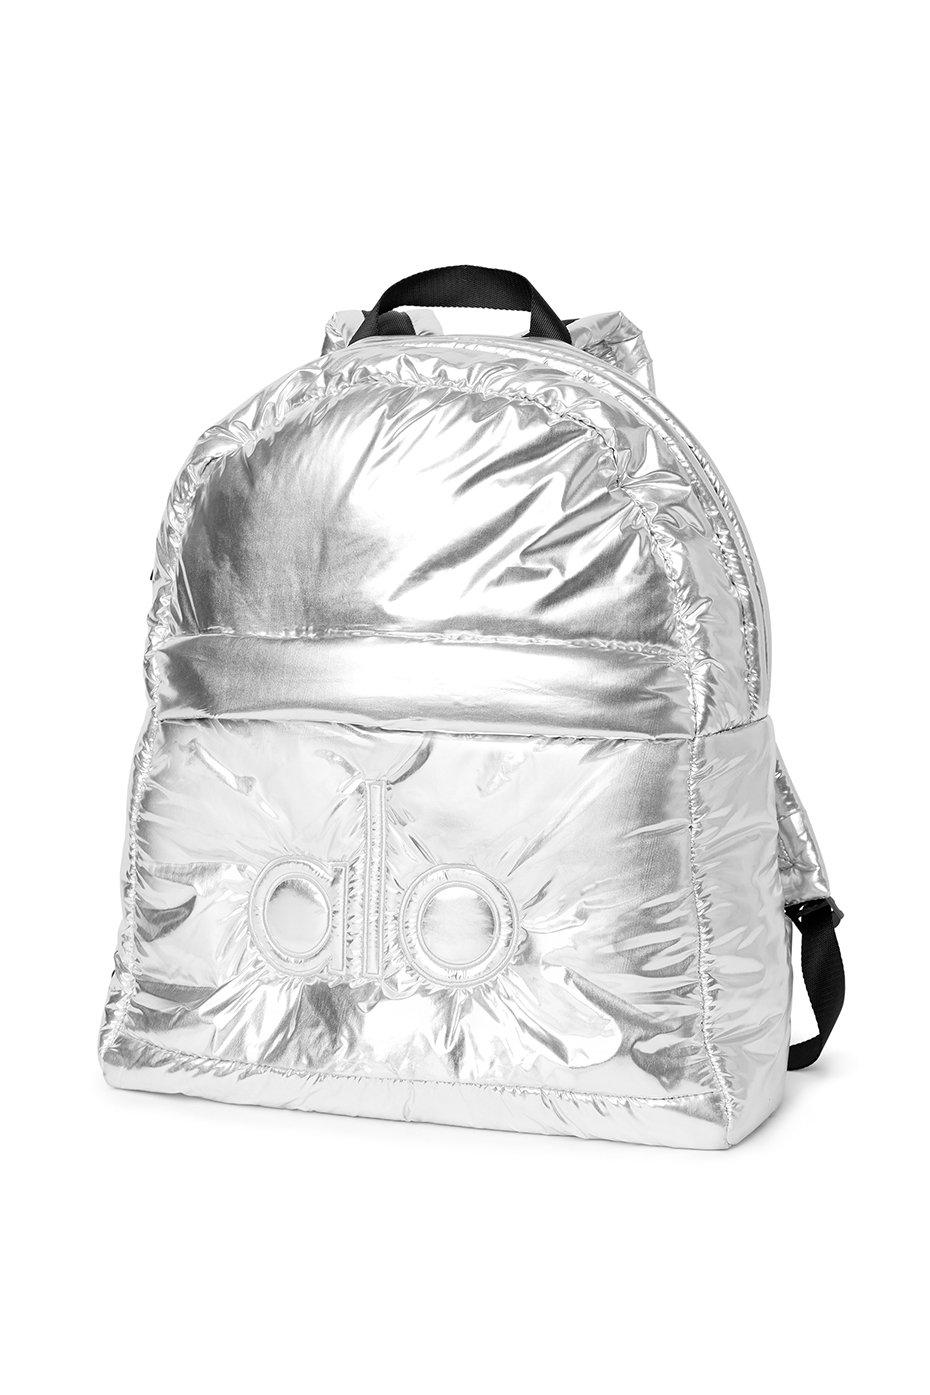 Reflection Backpack - Silver